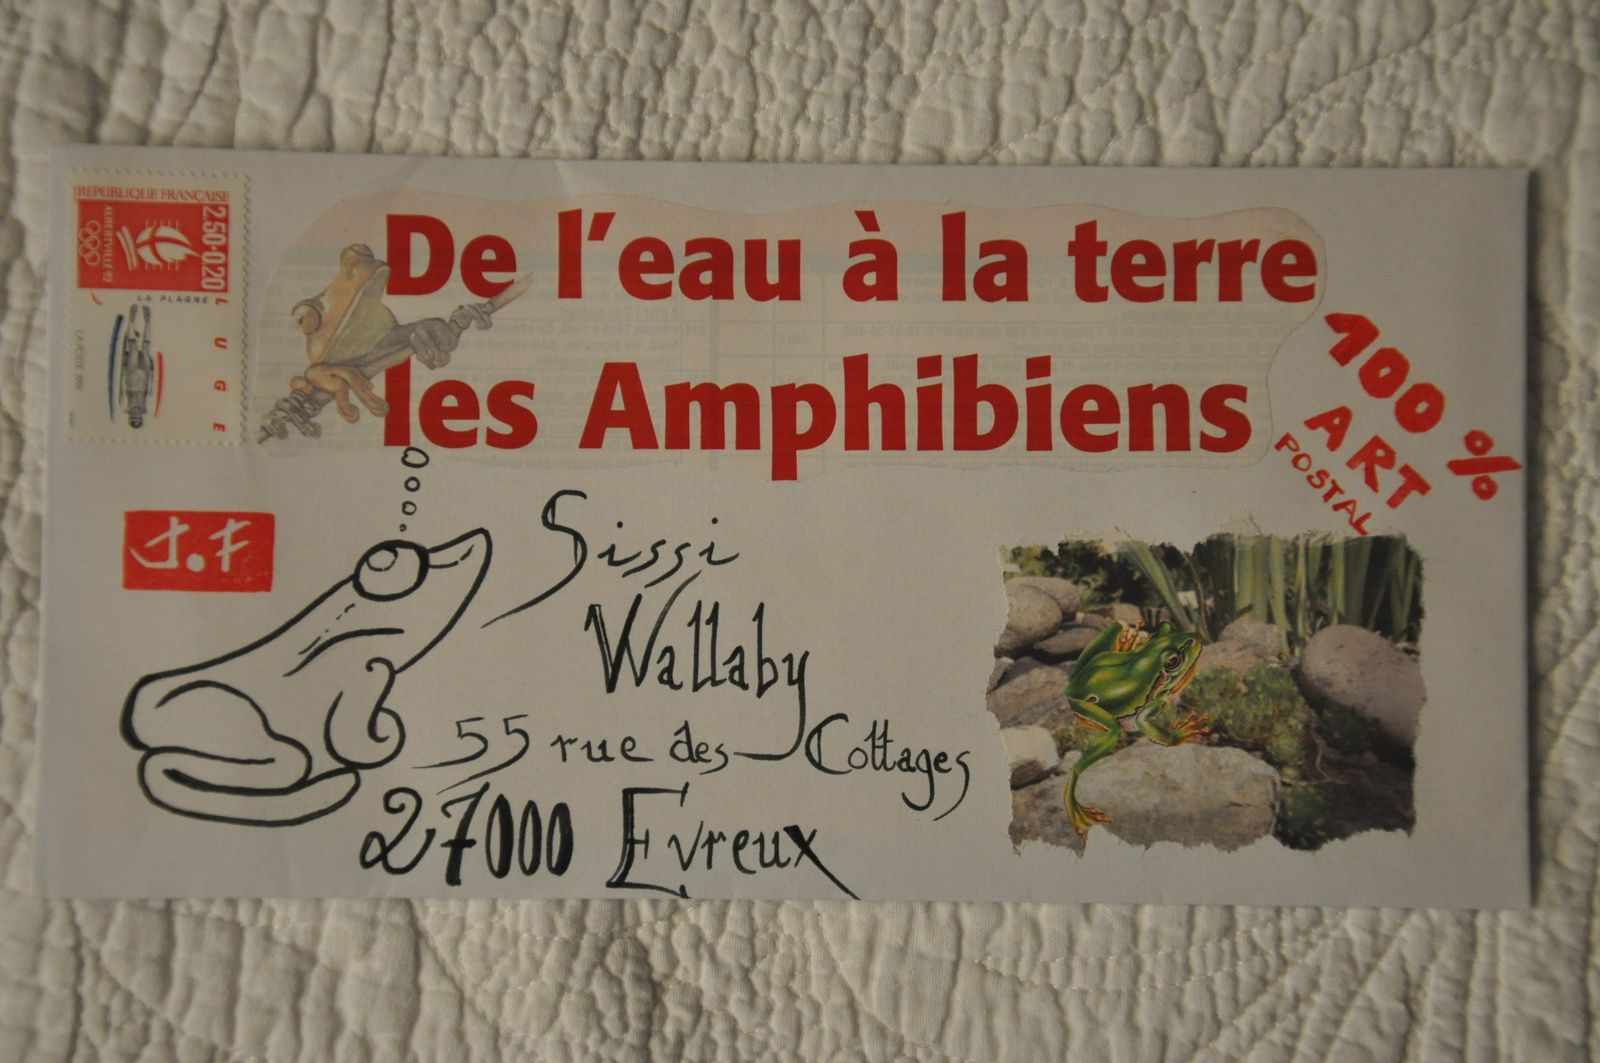 Pour Sissi Wallaby...